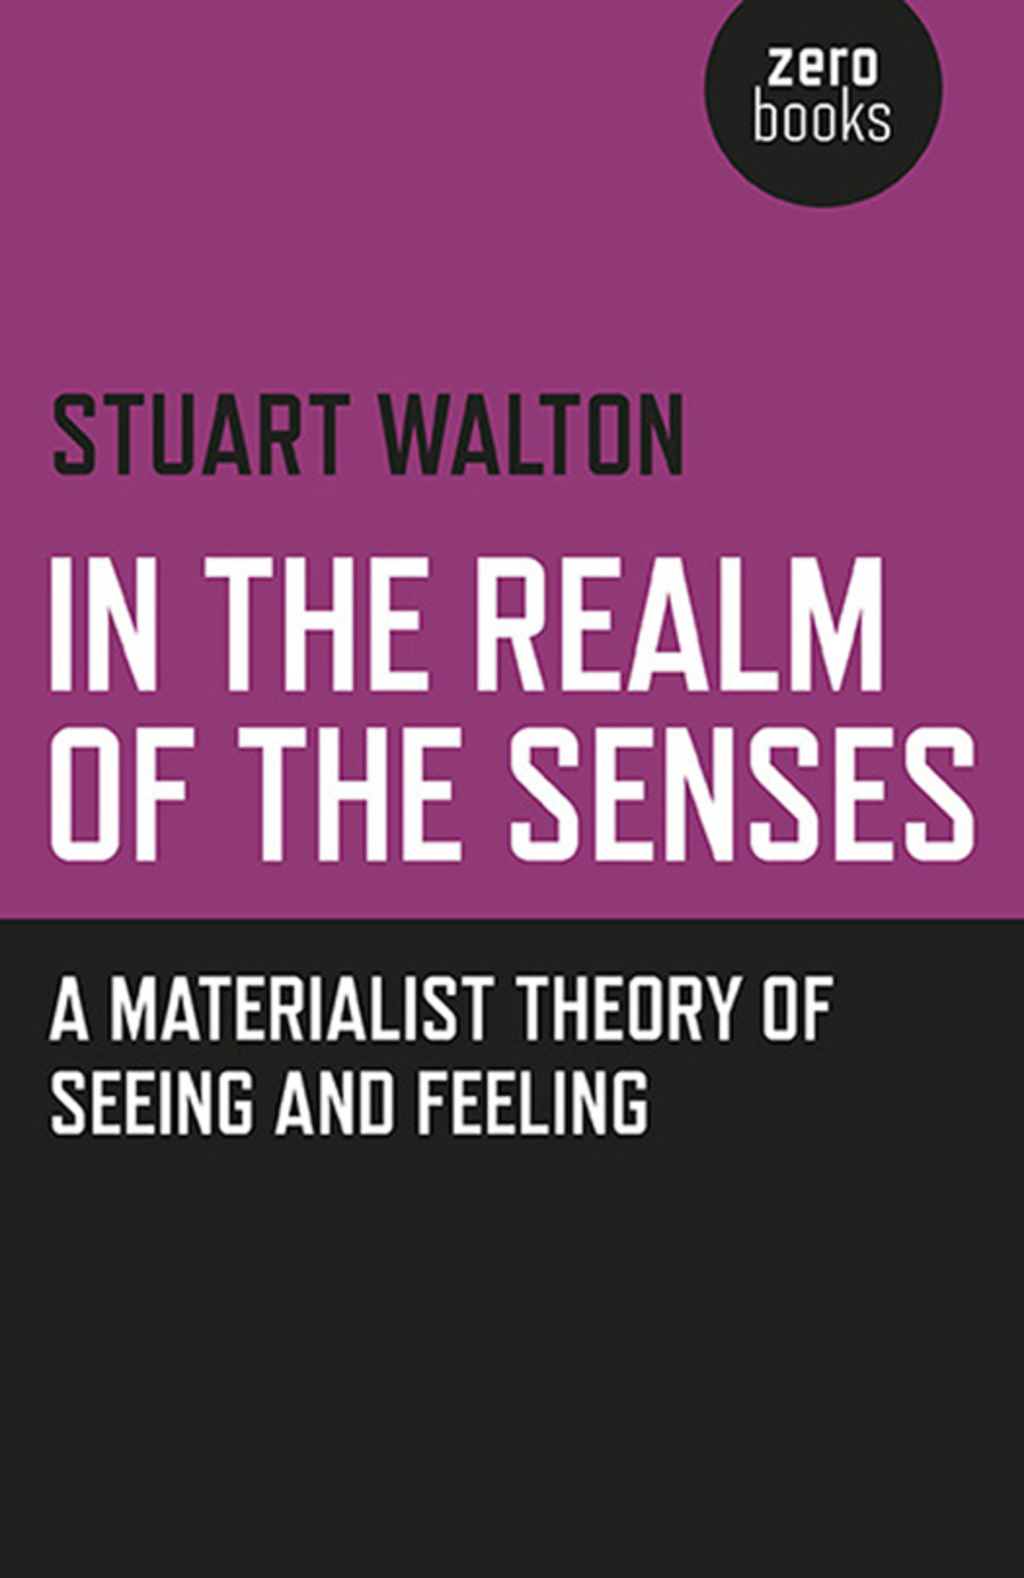 In The Realm of the Senses: A Materialist Theory of Seeing and Feeling (ebook) eBooks